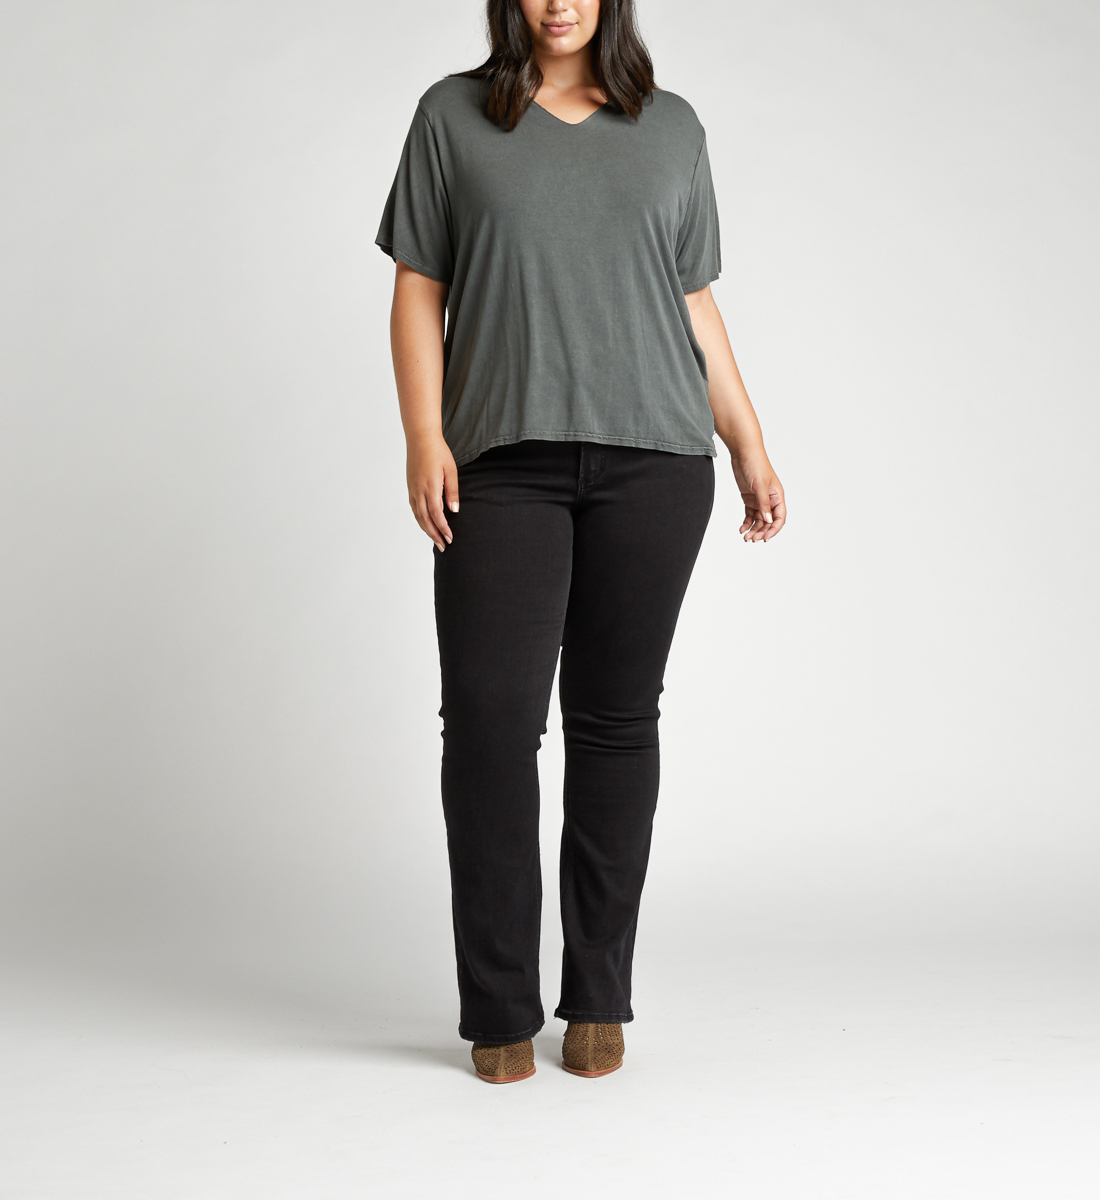 Arizona Top Plus Size,Black Back